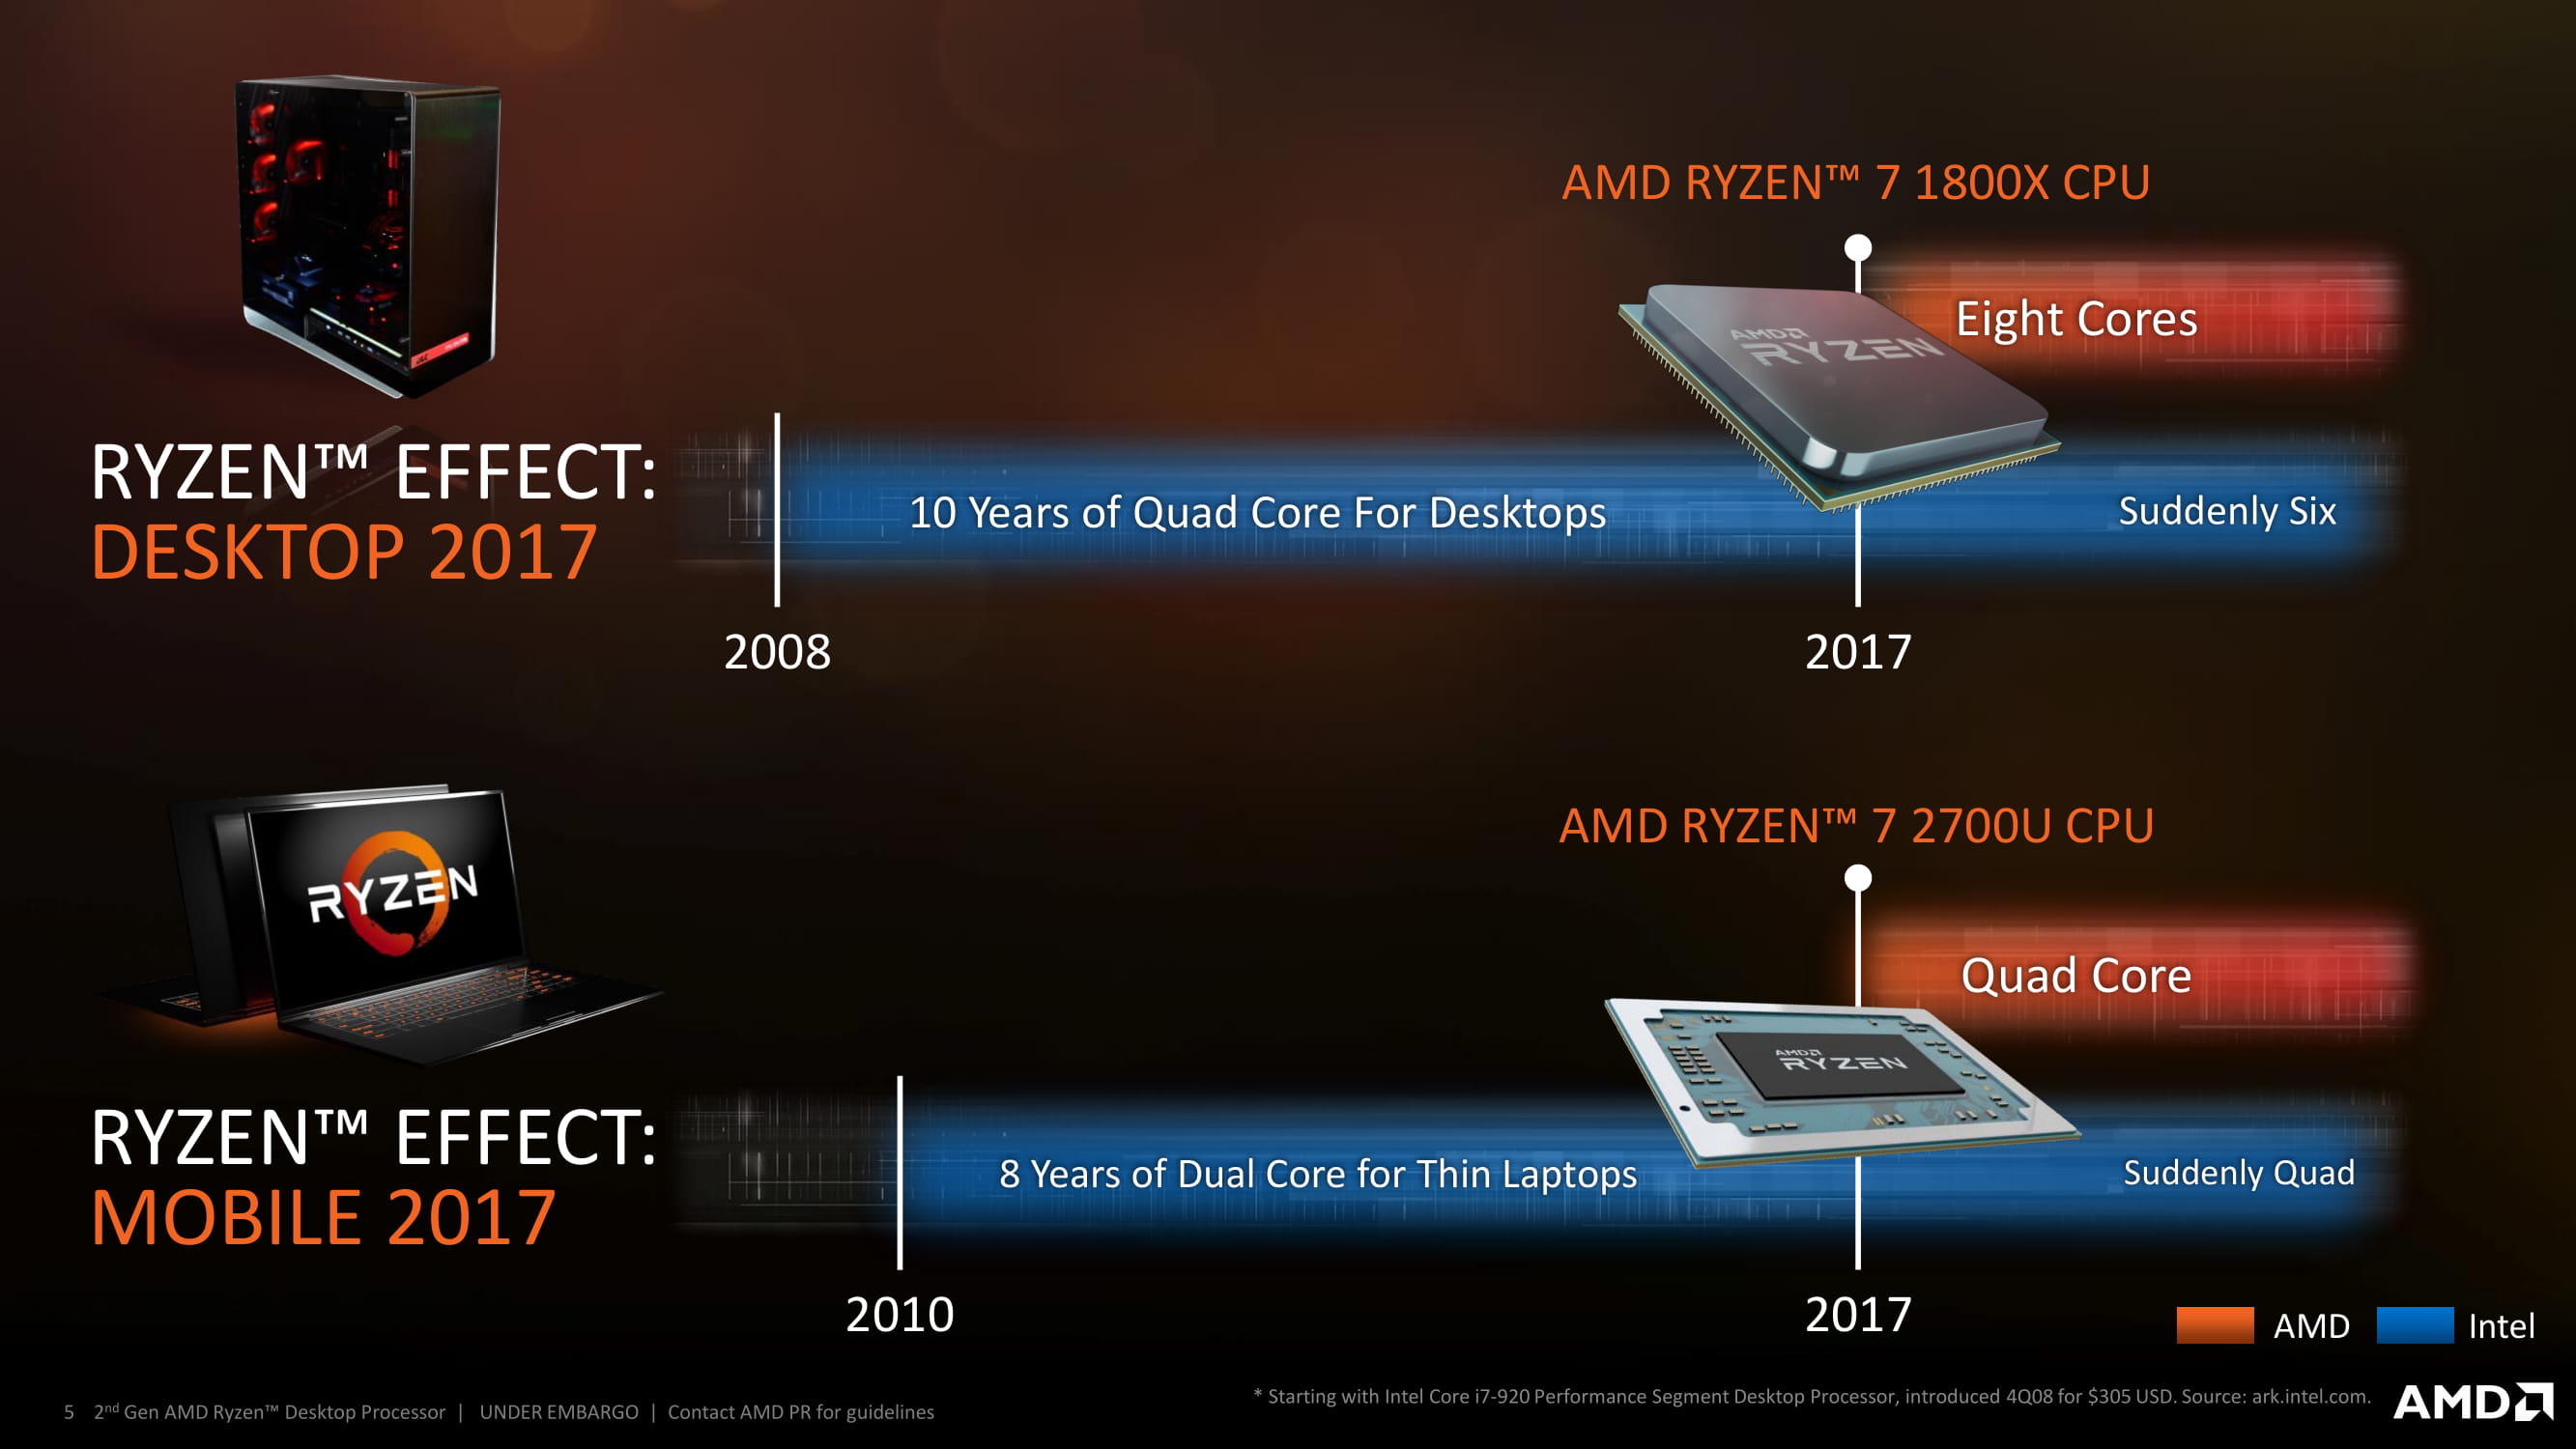 2nd Gen AMD Ryzen Desktop Processor-2-05.jpg